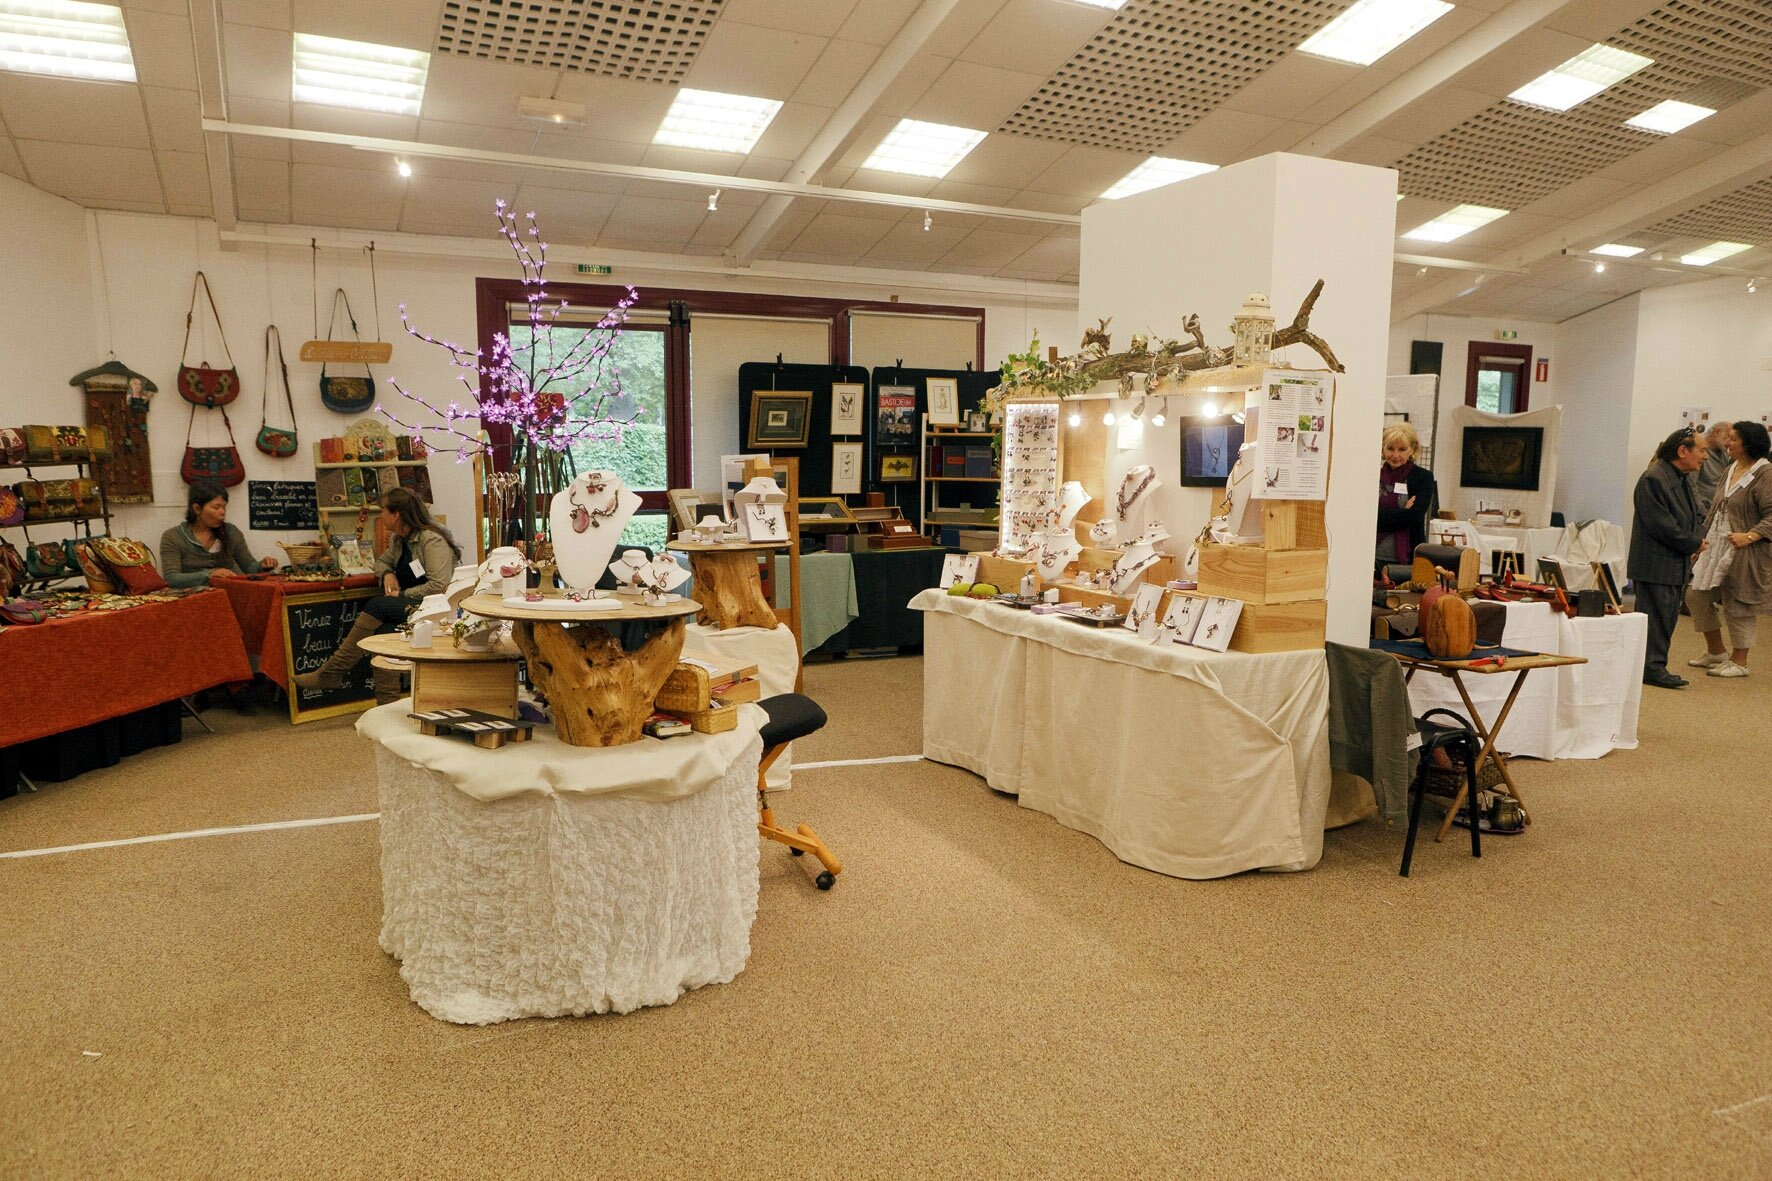 Salon artisans d 39 art ch teau monbazillac photo de for Salon artisanal